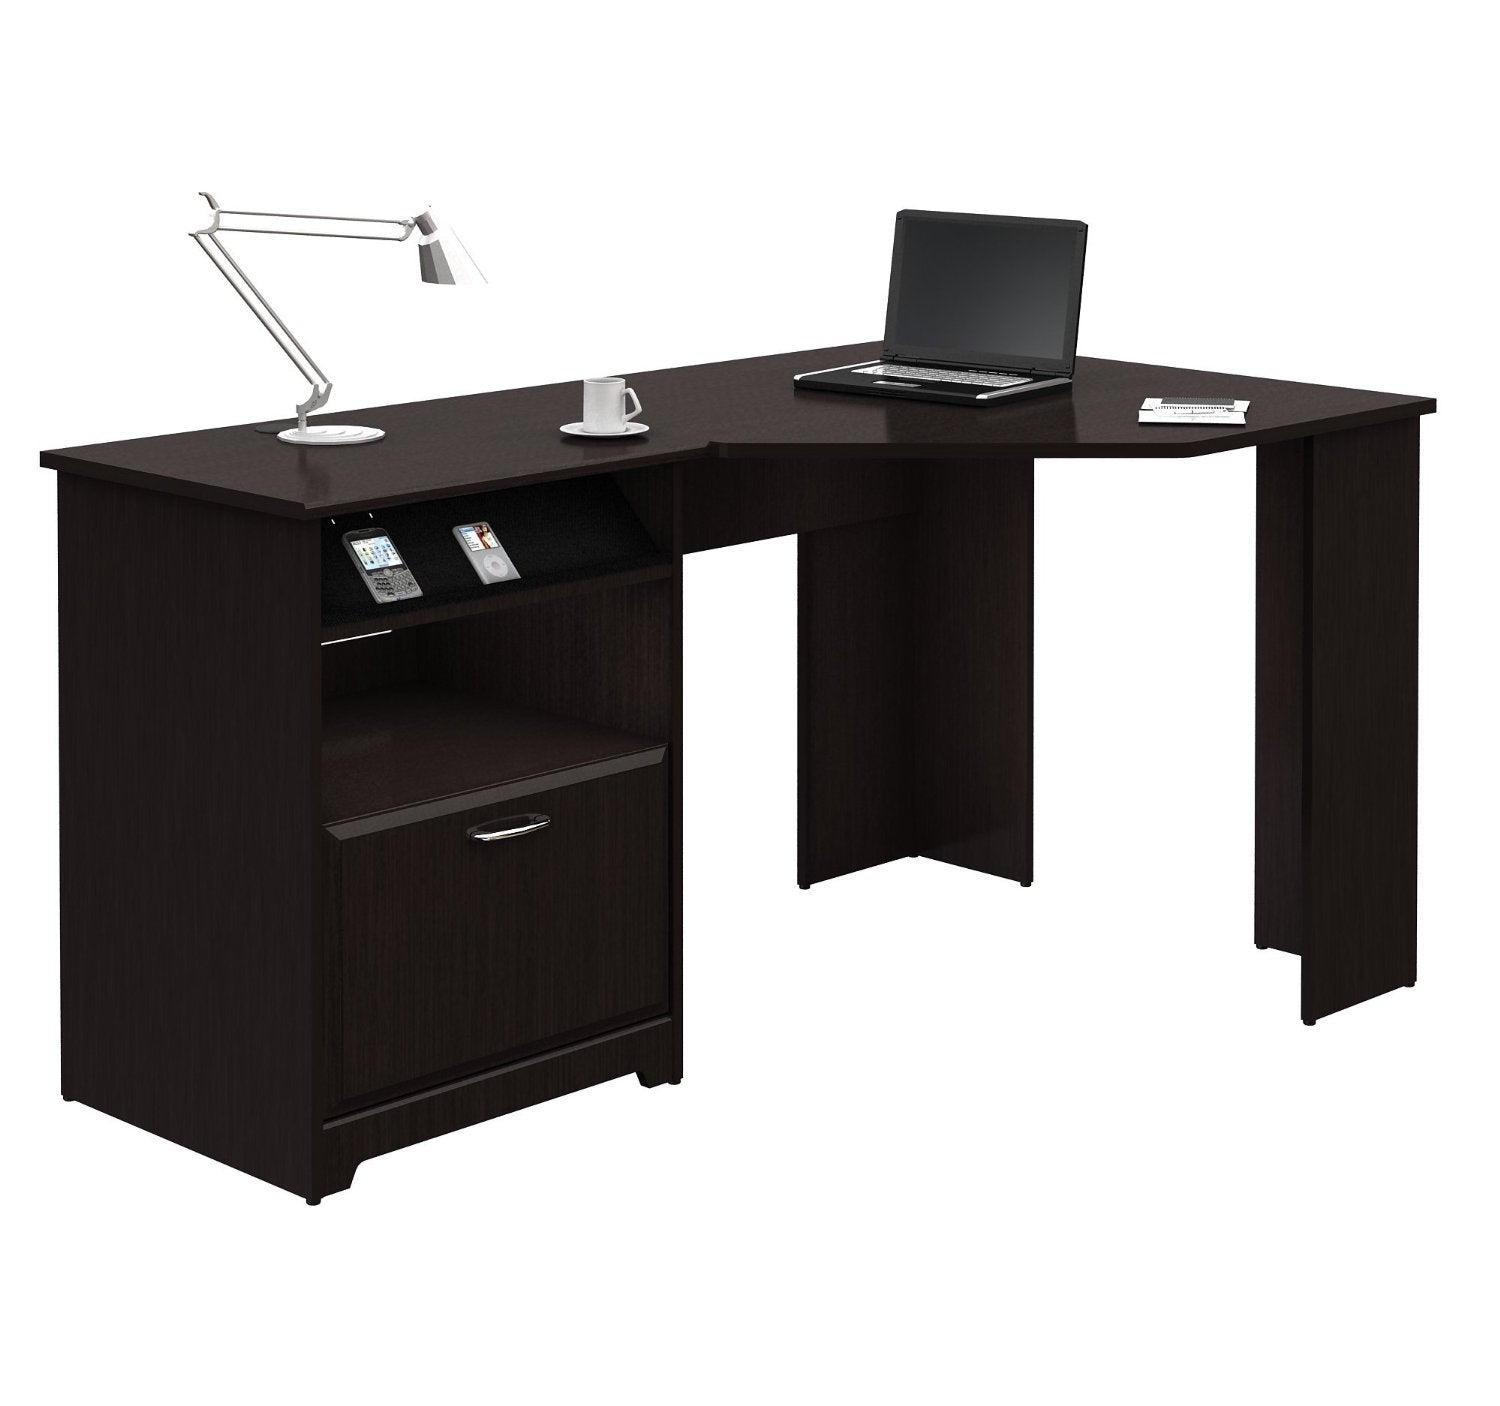 OfficeMateZ™ L Shaped Wood Desk L Shaped Desk With Drawers L Shaped Desk With Storage